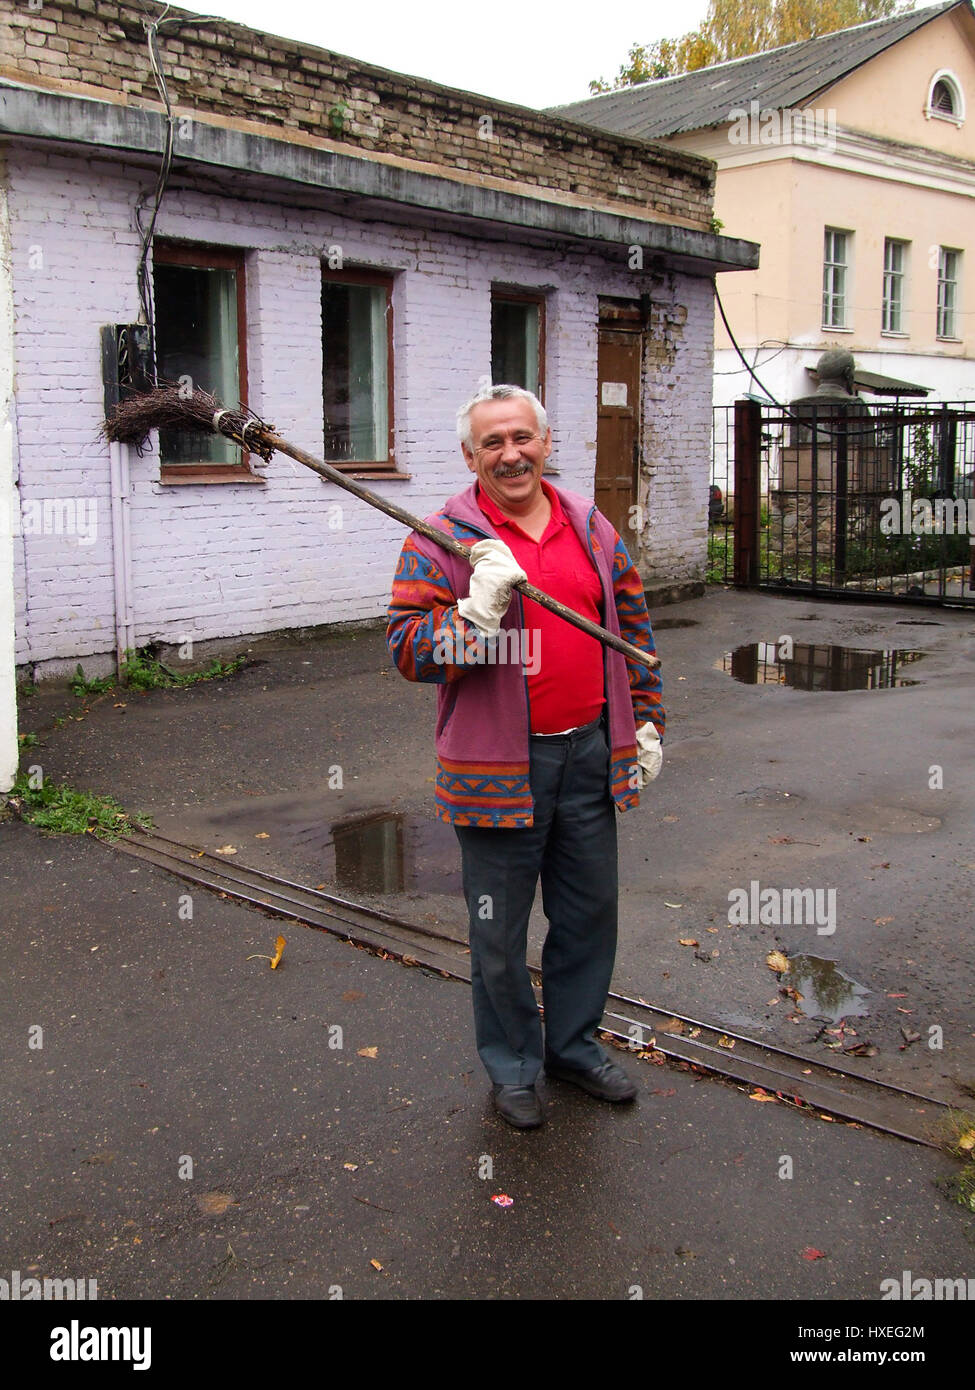 This workman with a stick broom was sweeping the parking lot of the KGB Headquarters complex in Vitebsk, Belarus. - Stock Image